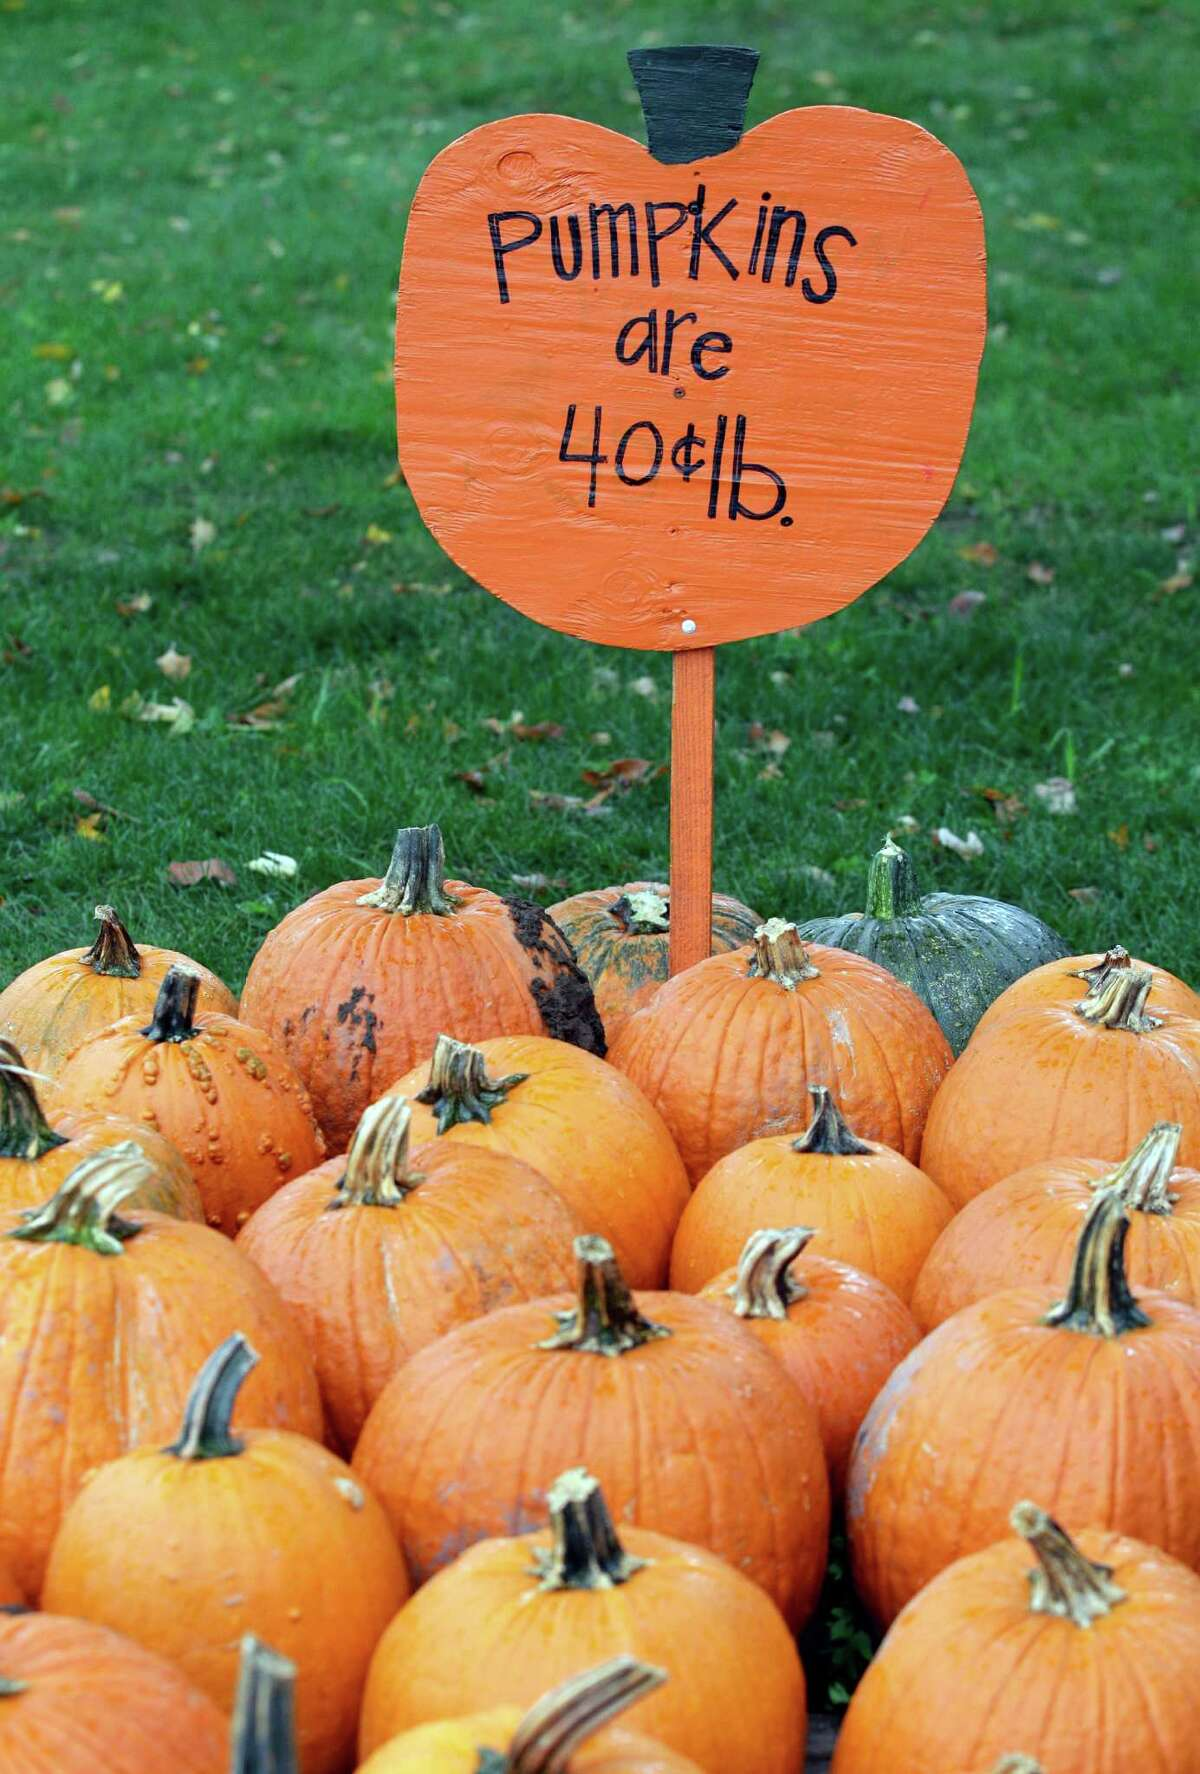 Halloween pumpkins are for sale at Kelkenberg Farm in Akron, N.Y., Monday, Oct. 8, 2012. While many crops withered after a late spring frost and a dry summer, farmers say their pumpkins have thrived in the drier weather this year.